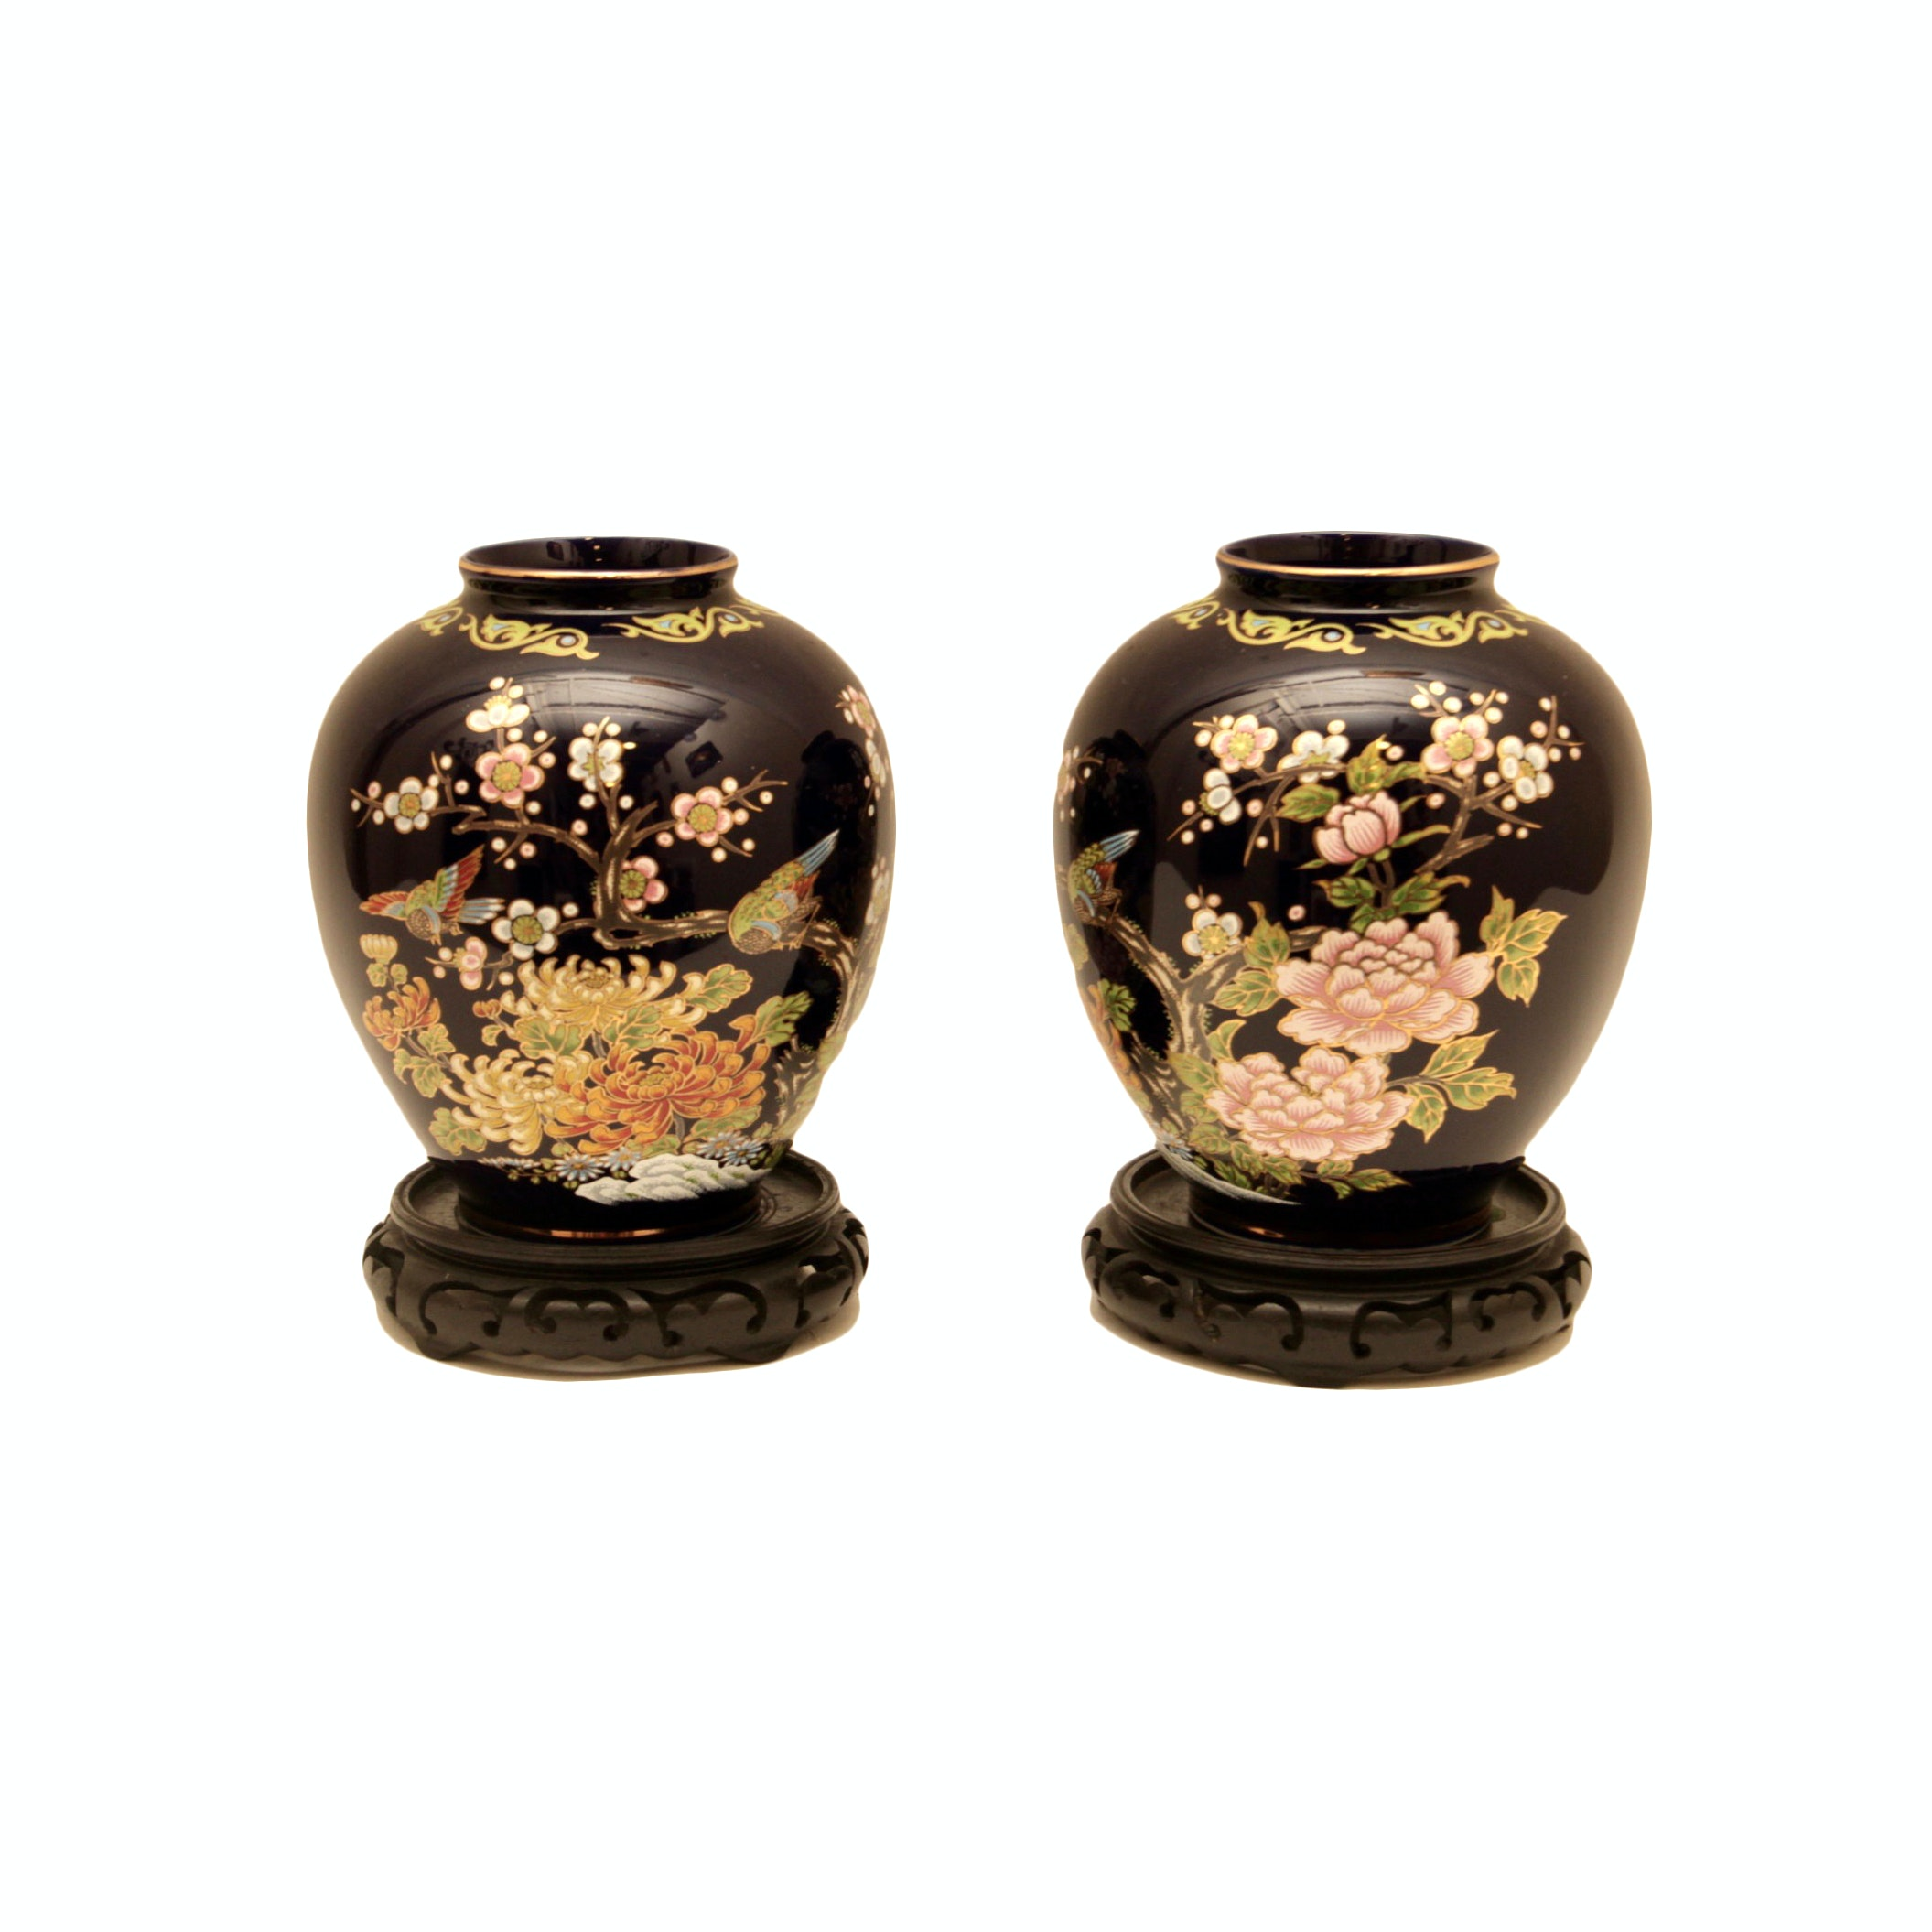 Pair of Japanese Hand Painted Glazed Ceramic Vases